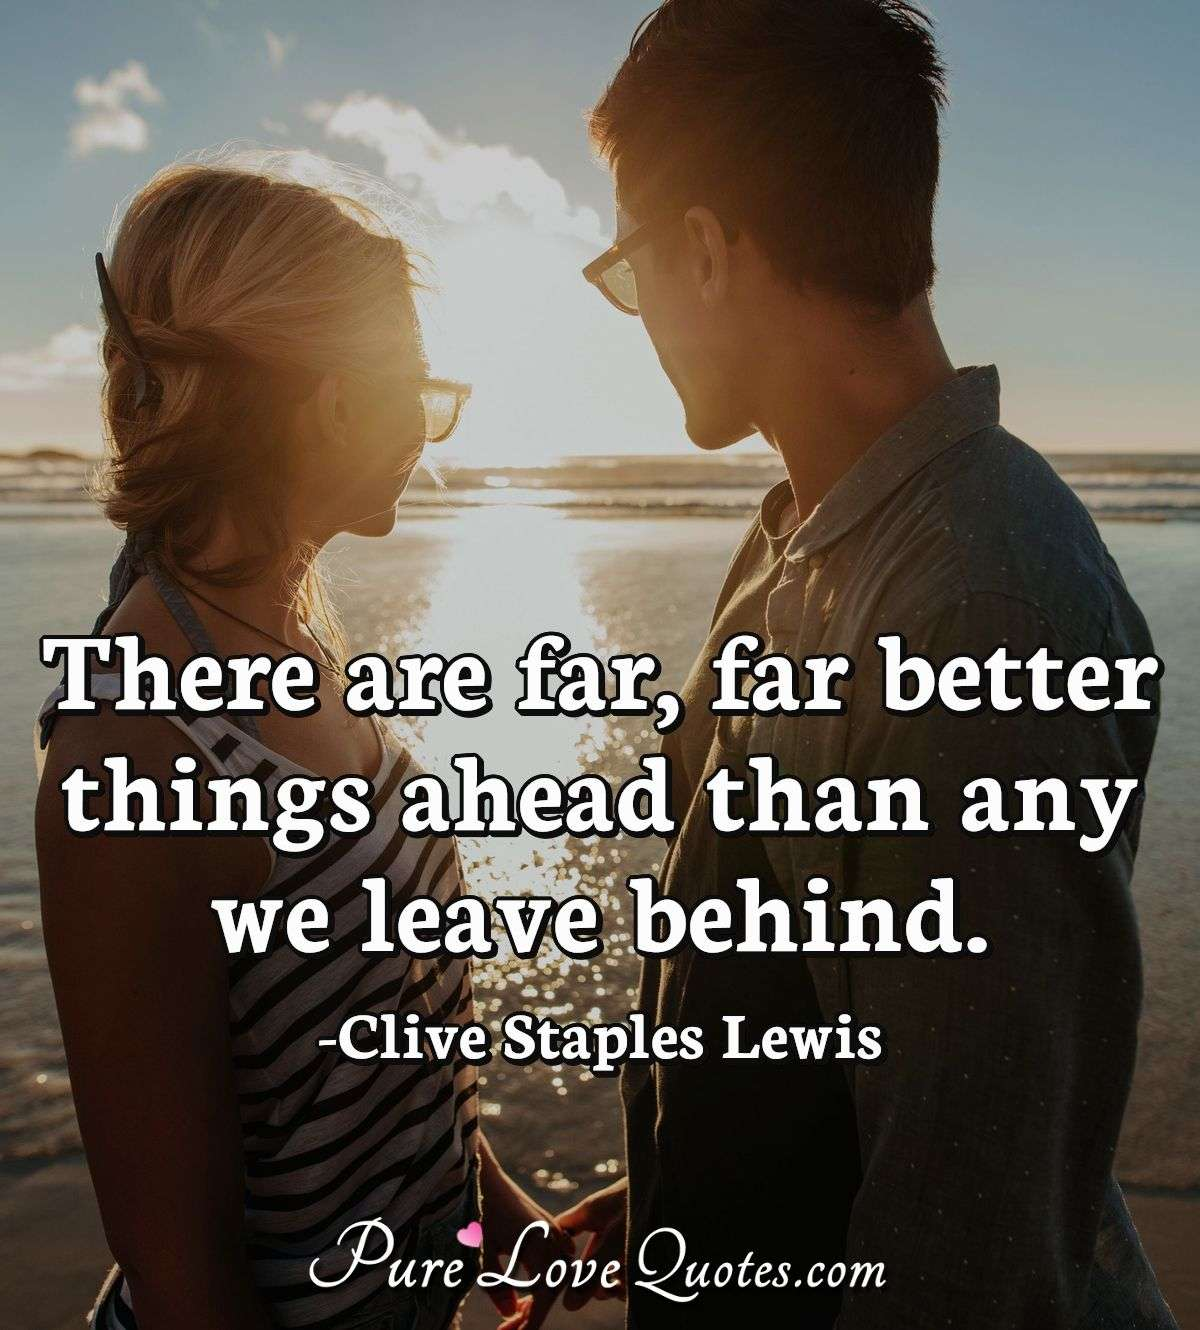 There are far, far better things ahead than any we leave behind. - Clive Staples Lewis